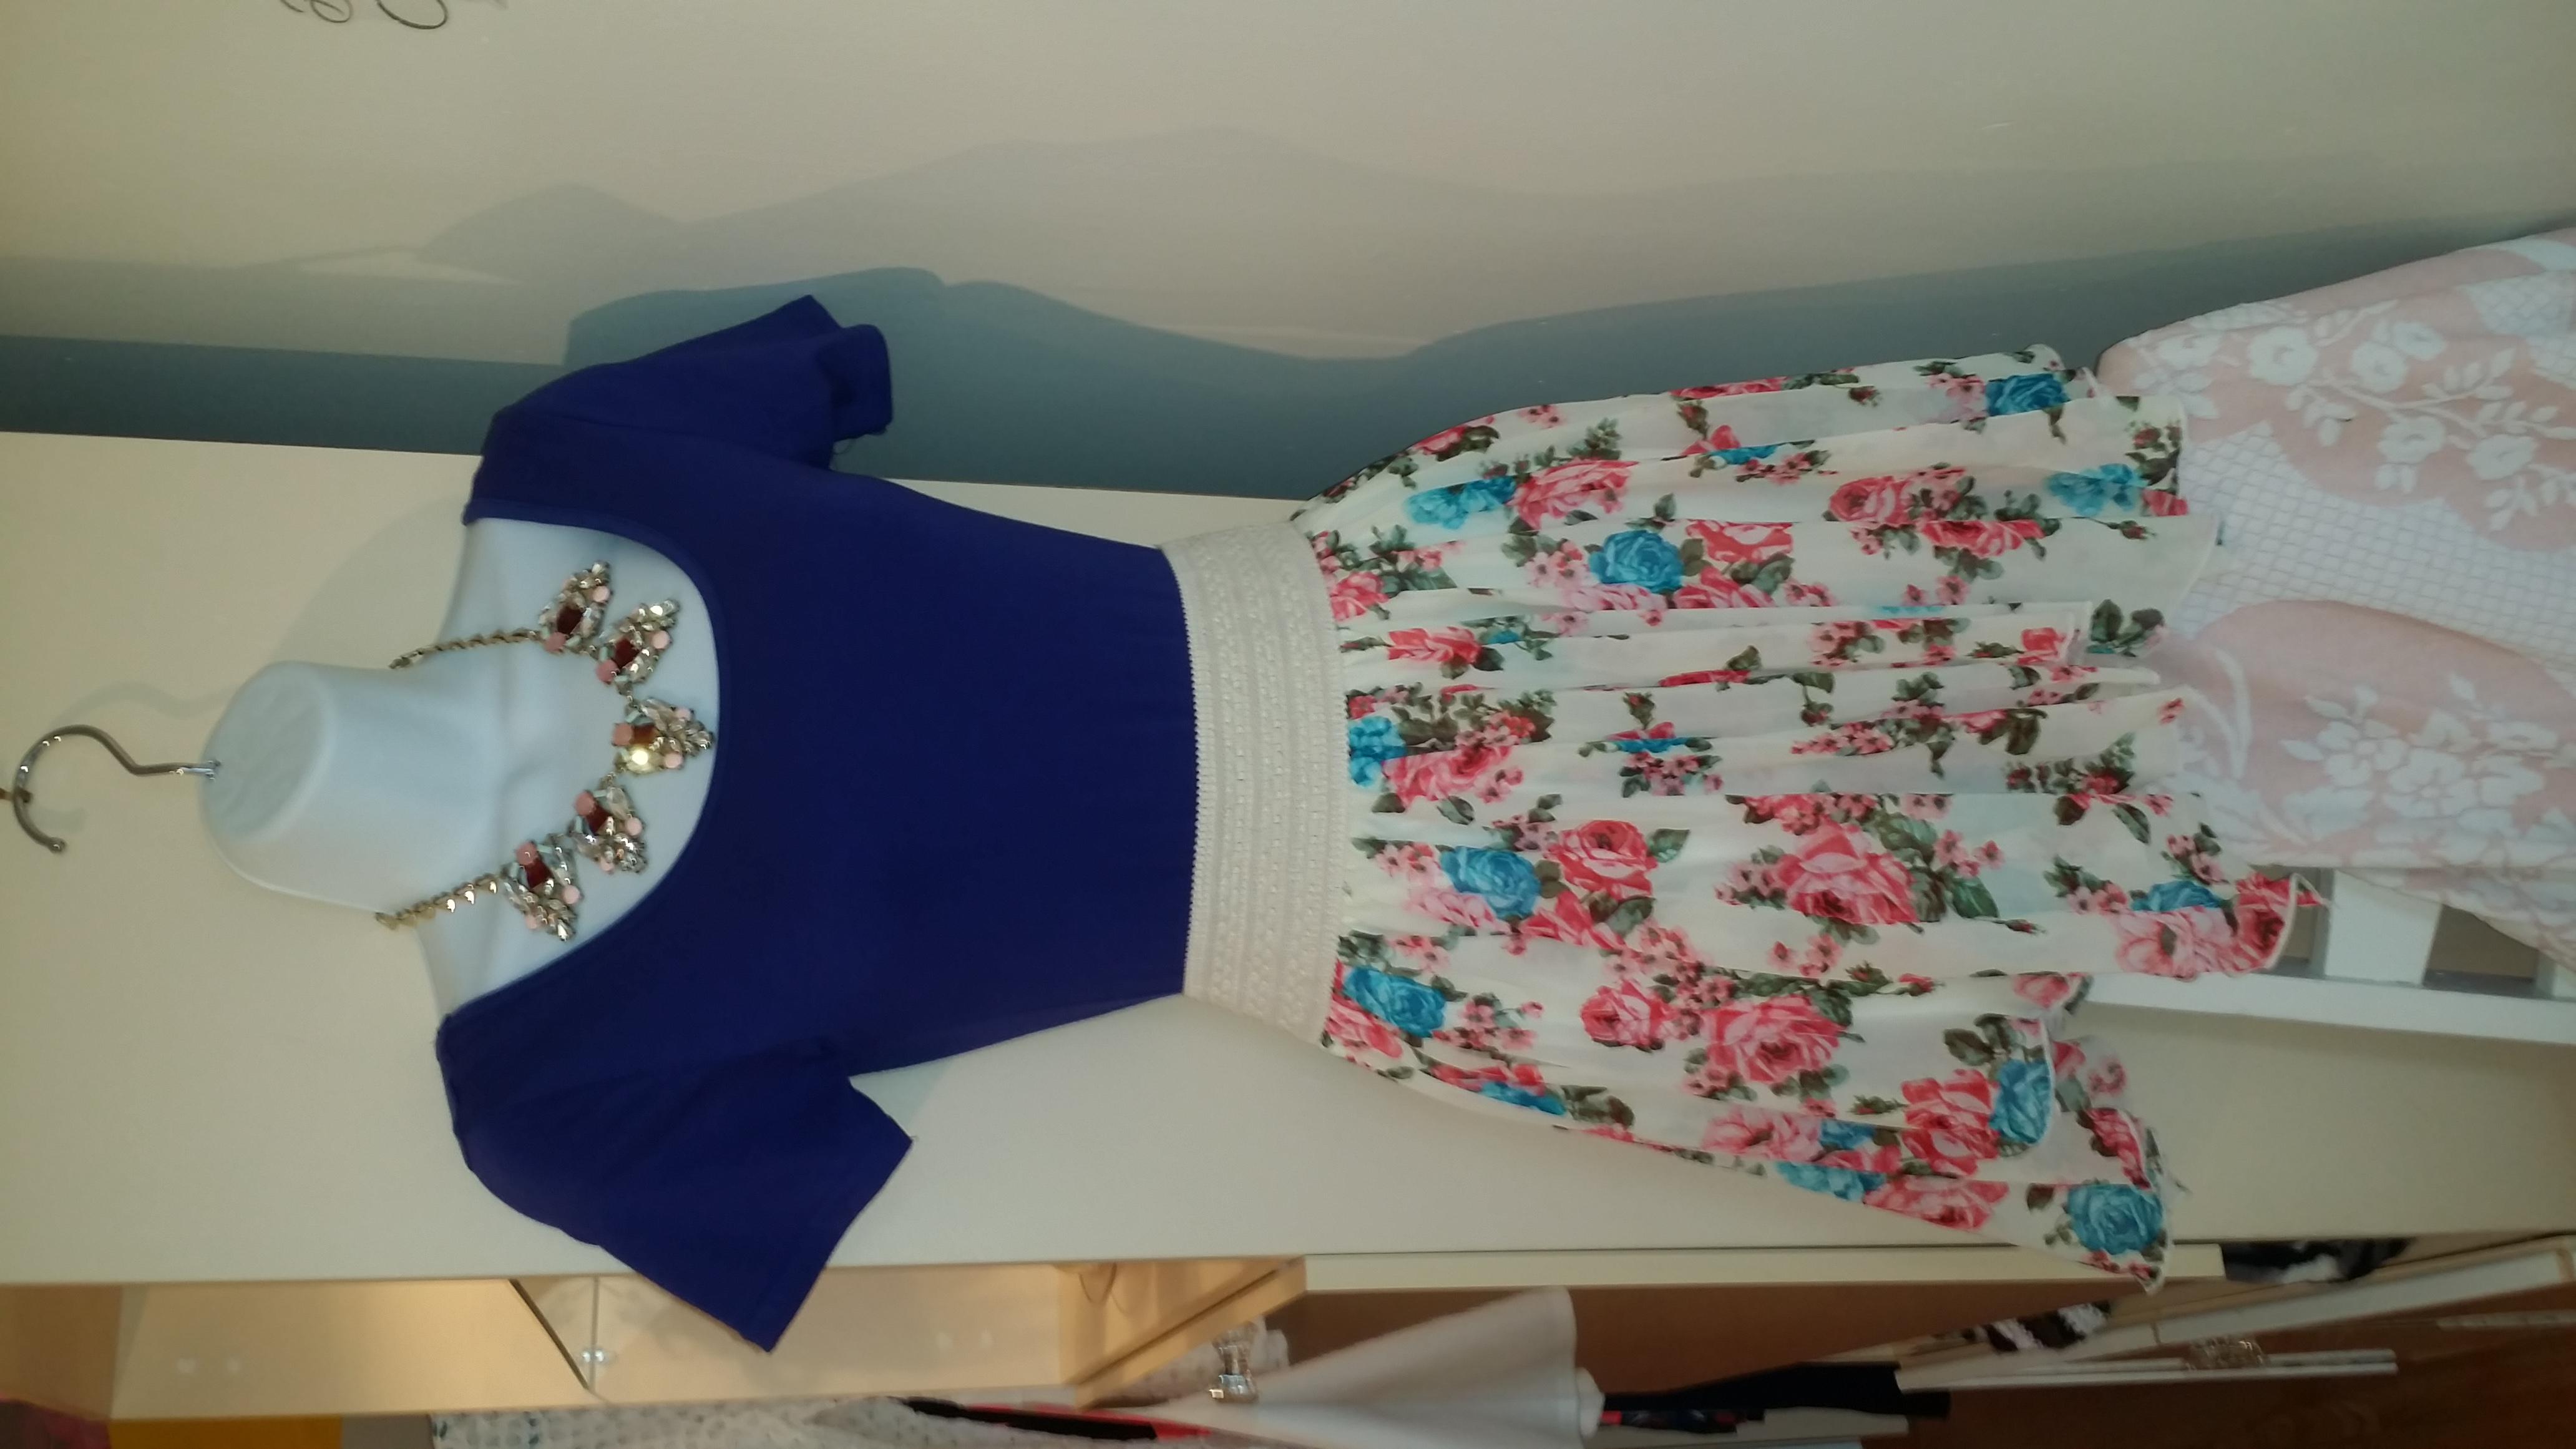 Mannequin blue blouse and floral skirt